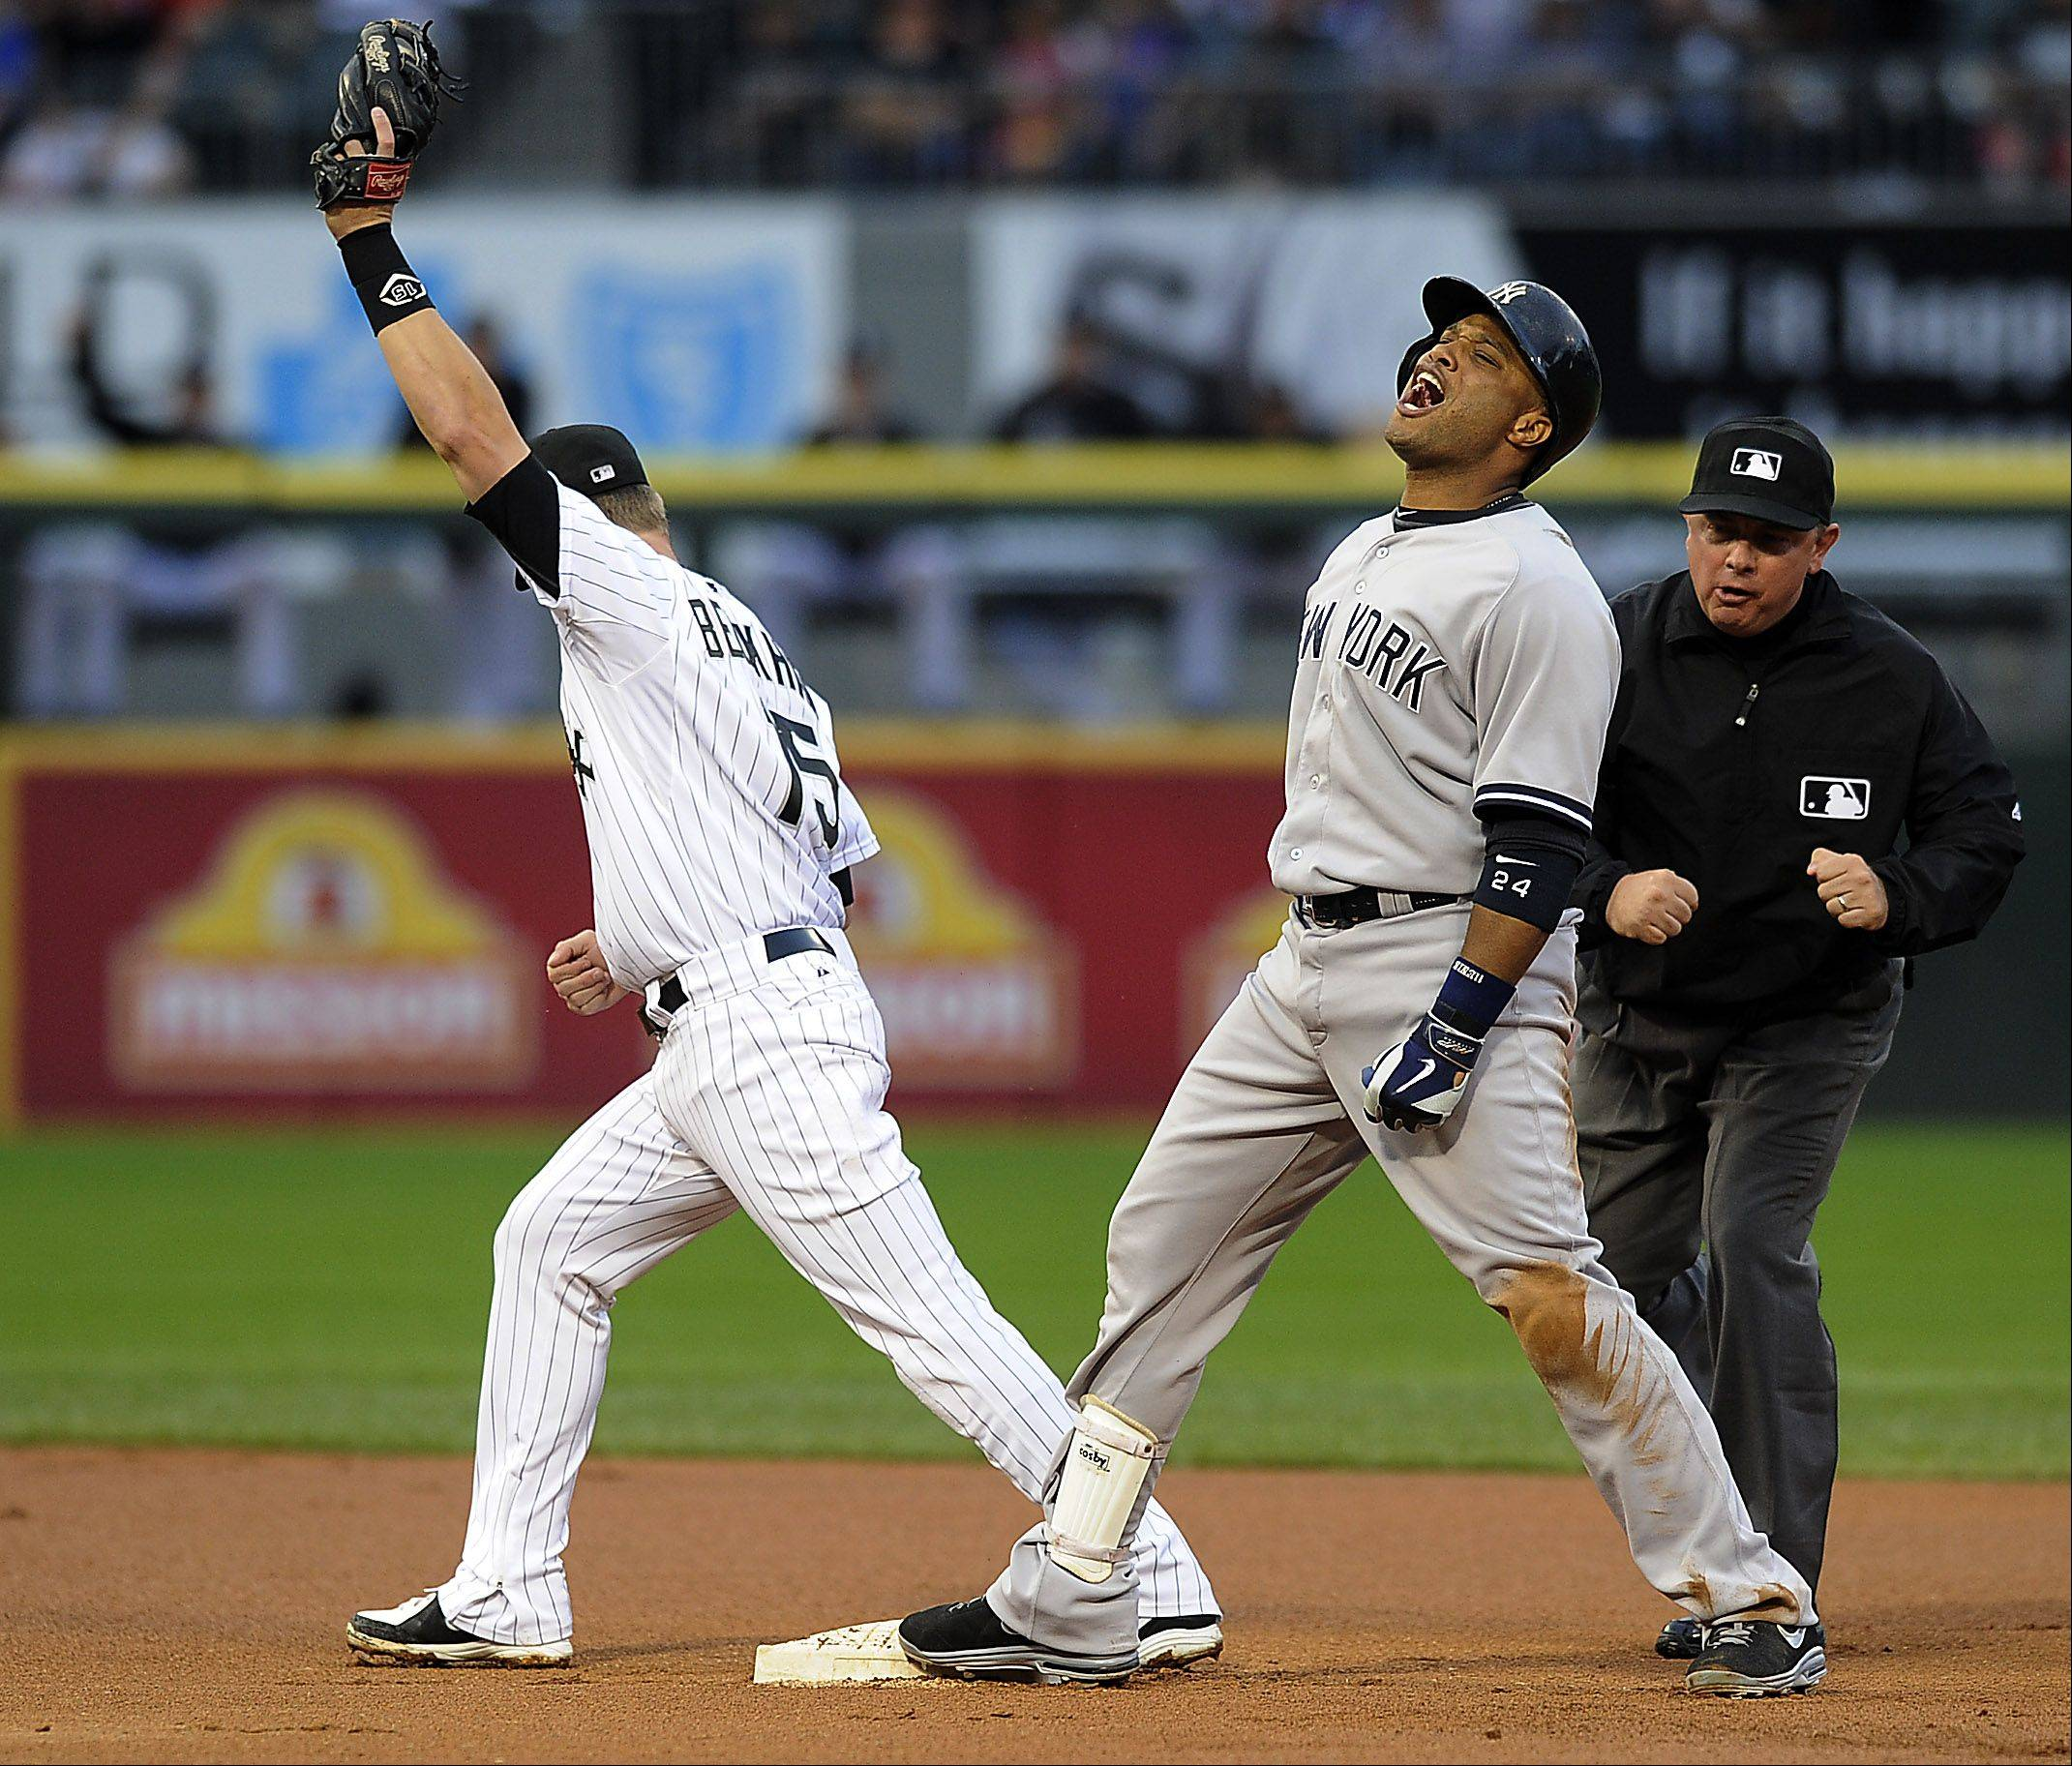 New York YankeesRobinson Cano reacts to being tagged out at second by White Sox's Gordon Beckham.